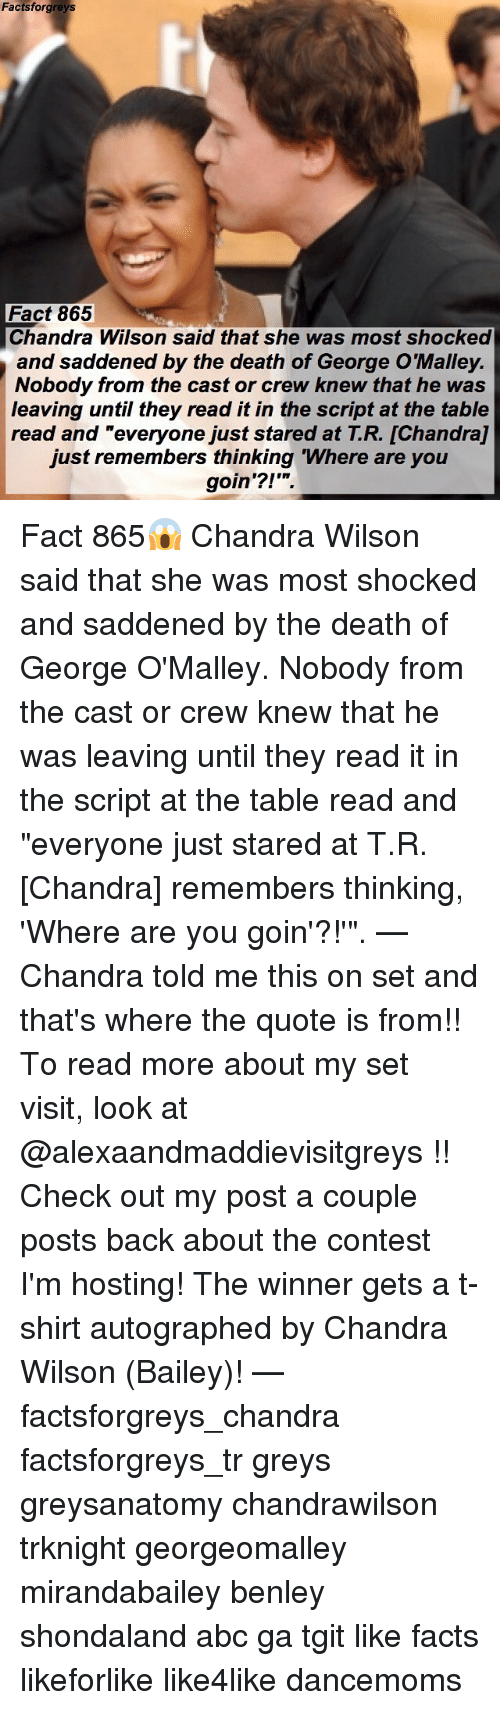 """autographed: Factsforgreys  Fact 865  Chandra Wilson said that she was most shocked  and saddened by the death of George O'Malley.  Nobody from the cast or crew knew that he was  leaving until they read it in the script at the table  read and """"everyone just stared at T.R. [Chandra]  just remembers thinking Where are you  goin'?!' Fact 865😱 Chandra Wilson said that she was most shocked and saddened by the death of George O'Malley. Nobody from the cast or crew knew that he was leaving until they read it in the script at the table read and """"everyone just stared at T.R. [Chandra] remembers thinking, 'Where are you goin'?!'"""". — Chandra told me this on set and that's where the quote is from!! To read more about my set visit, look at @alexaandmaddievisitgreys !! Check out my post a couple posts back about the contest I'm hosting! The winner gets a t-shirt autographed by Chandra Wilson (Bailey)! — factsforgreys_chandra factsforgreys_tr greys greysanatomy chandrawilson trknight georgeomalley mirandabailey benley shondaland abc ga tgit like facts likeforlike like4like dancemoms"""